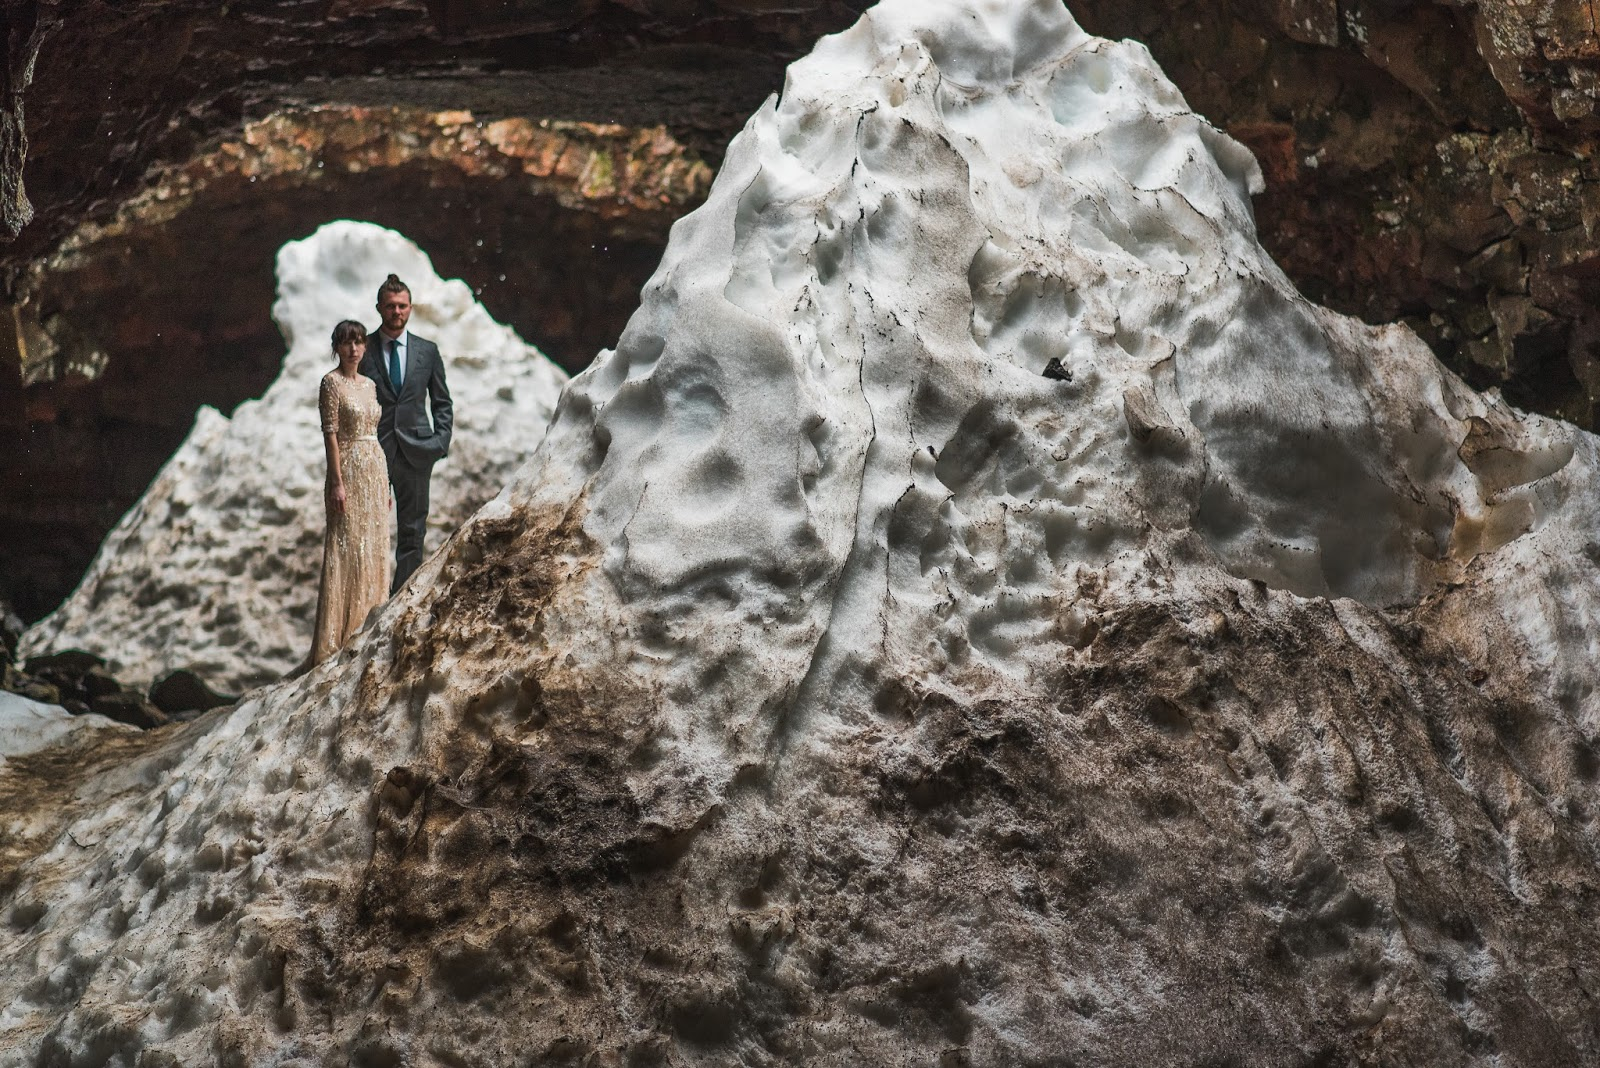 Icelandic Elopement at the Raufarholshellir Lava Tube Cave